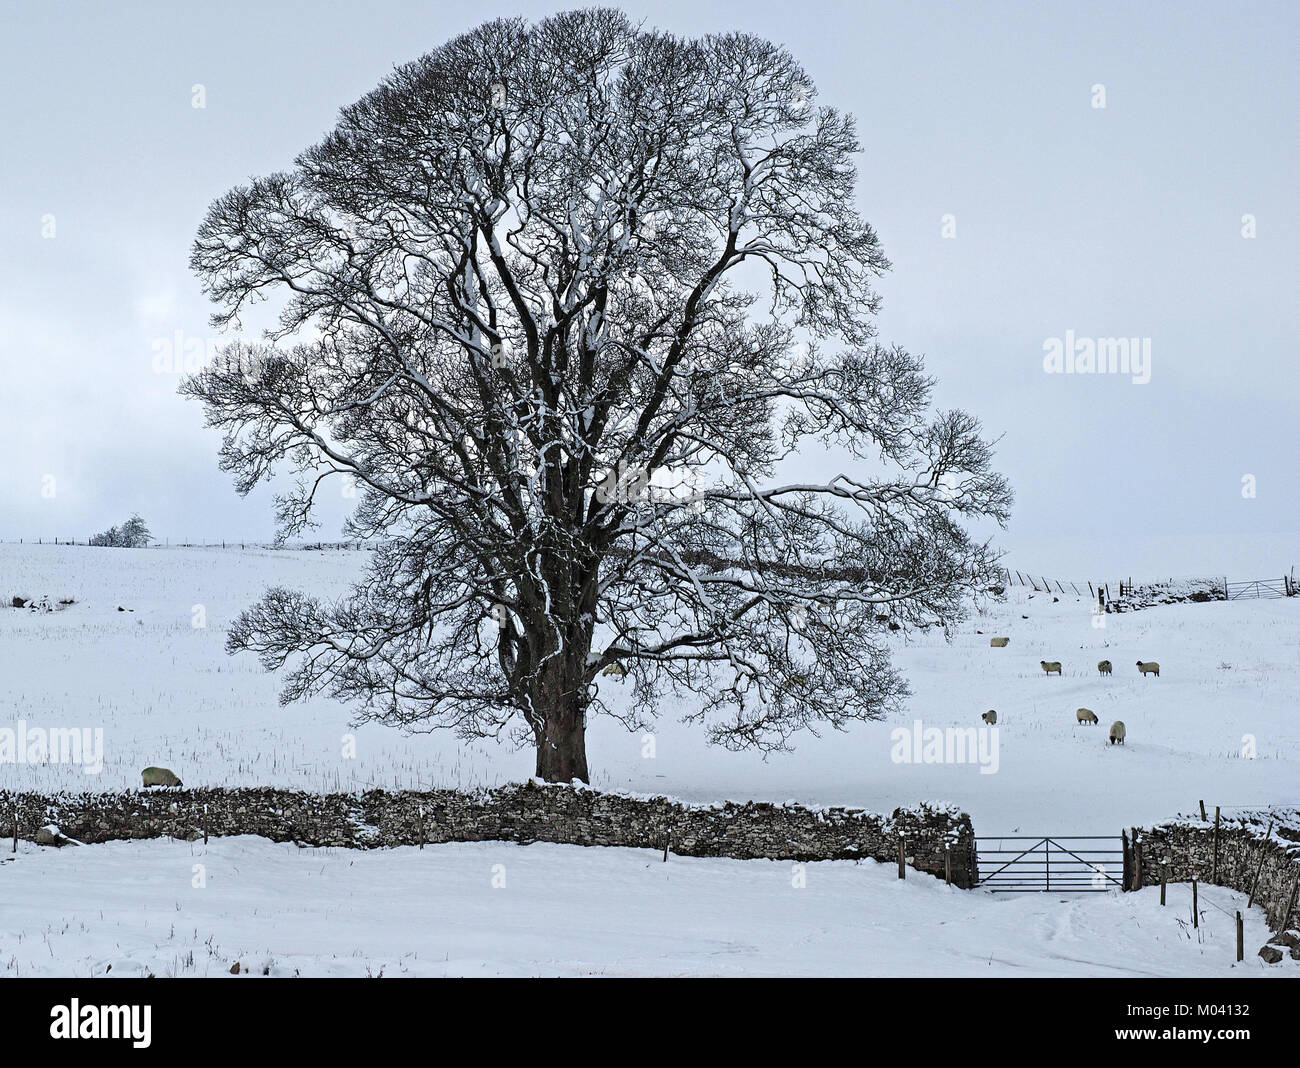 Crosby Ravensworth, Eden Valley, Cumbria, UK. 18th January, 2018. flock of sheep struggles to find grazing beneath - Stock Image